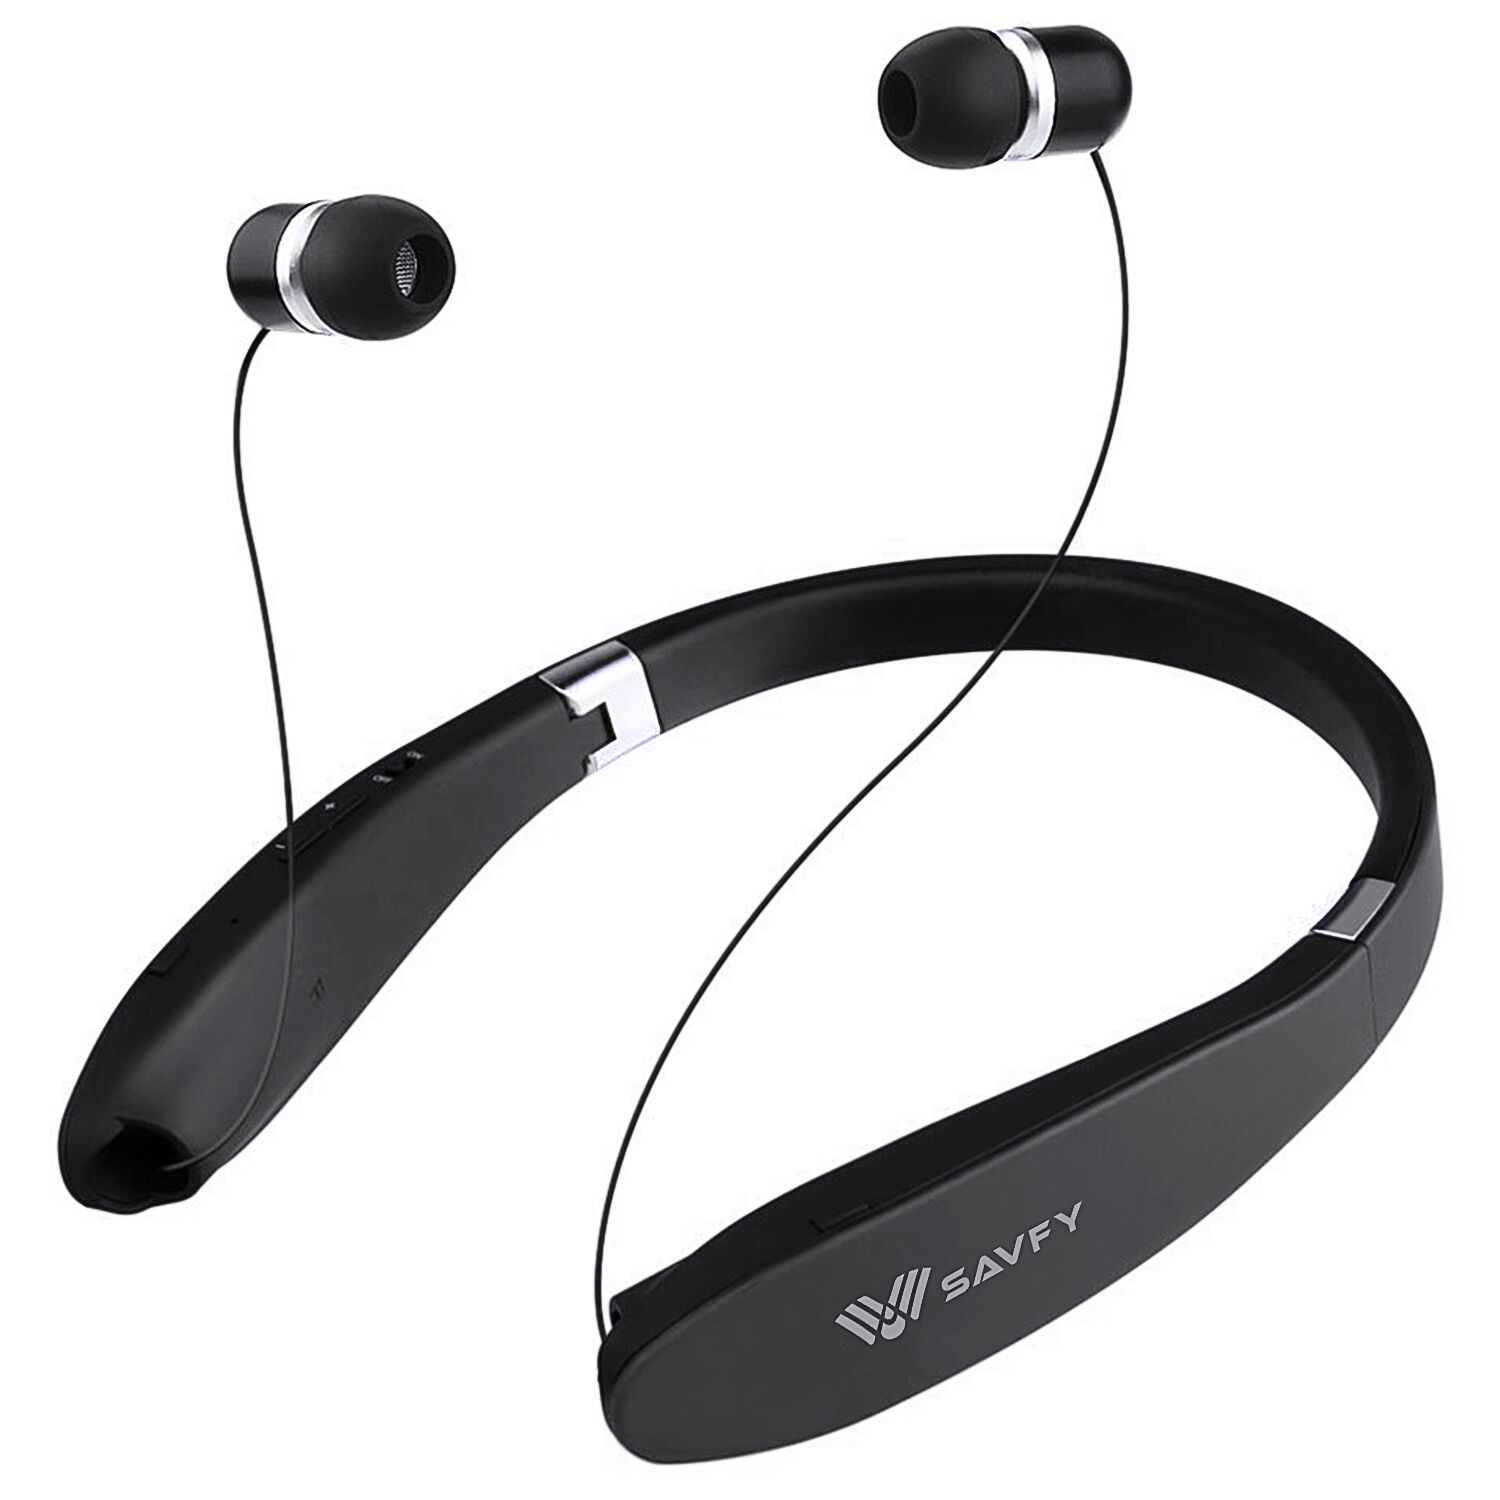 Savfy Wireless Bluetooth V41 Foldableretractable Headphones Stereo Universal Headset Earphone 41 Branded 1 Of 8free Shipping Earbuds